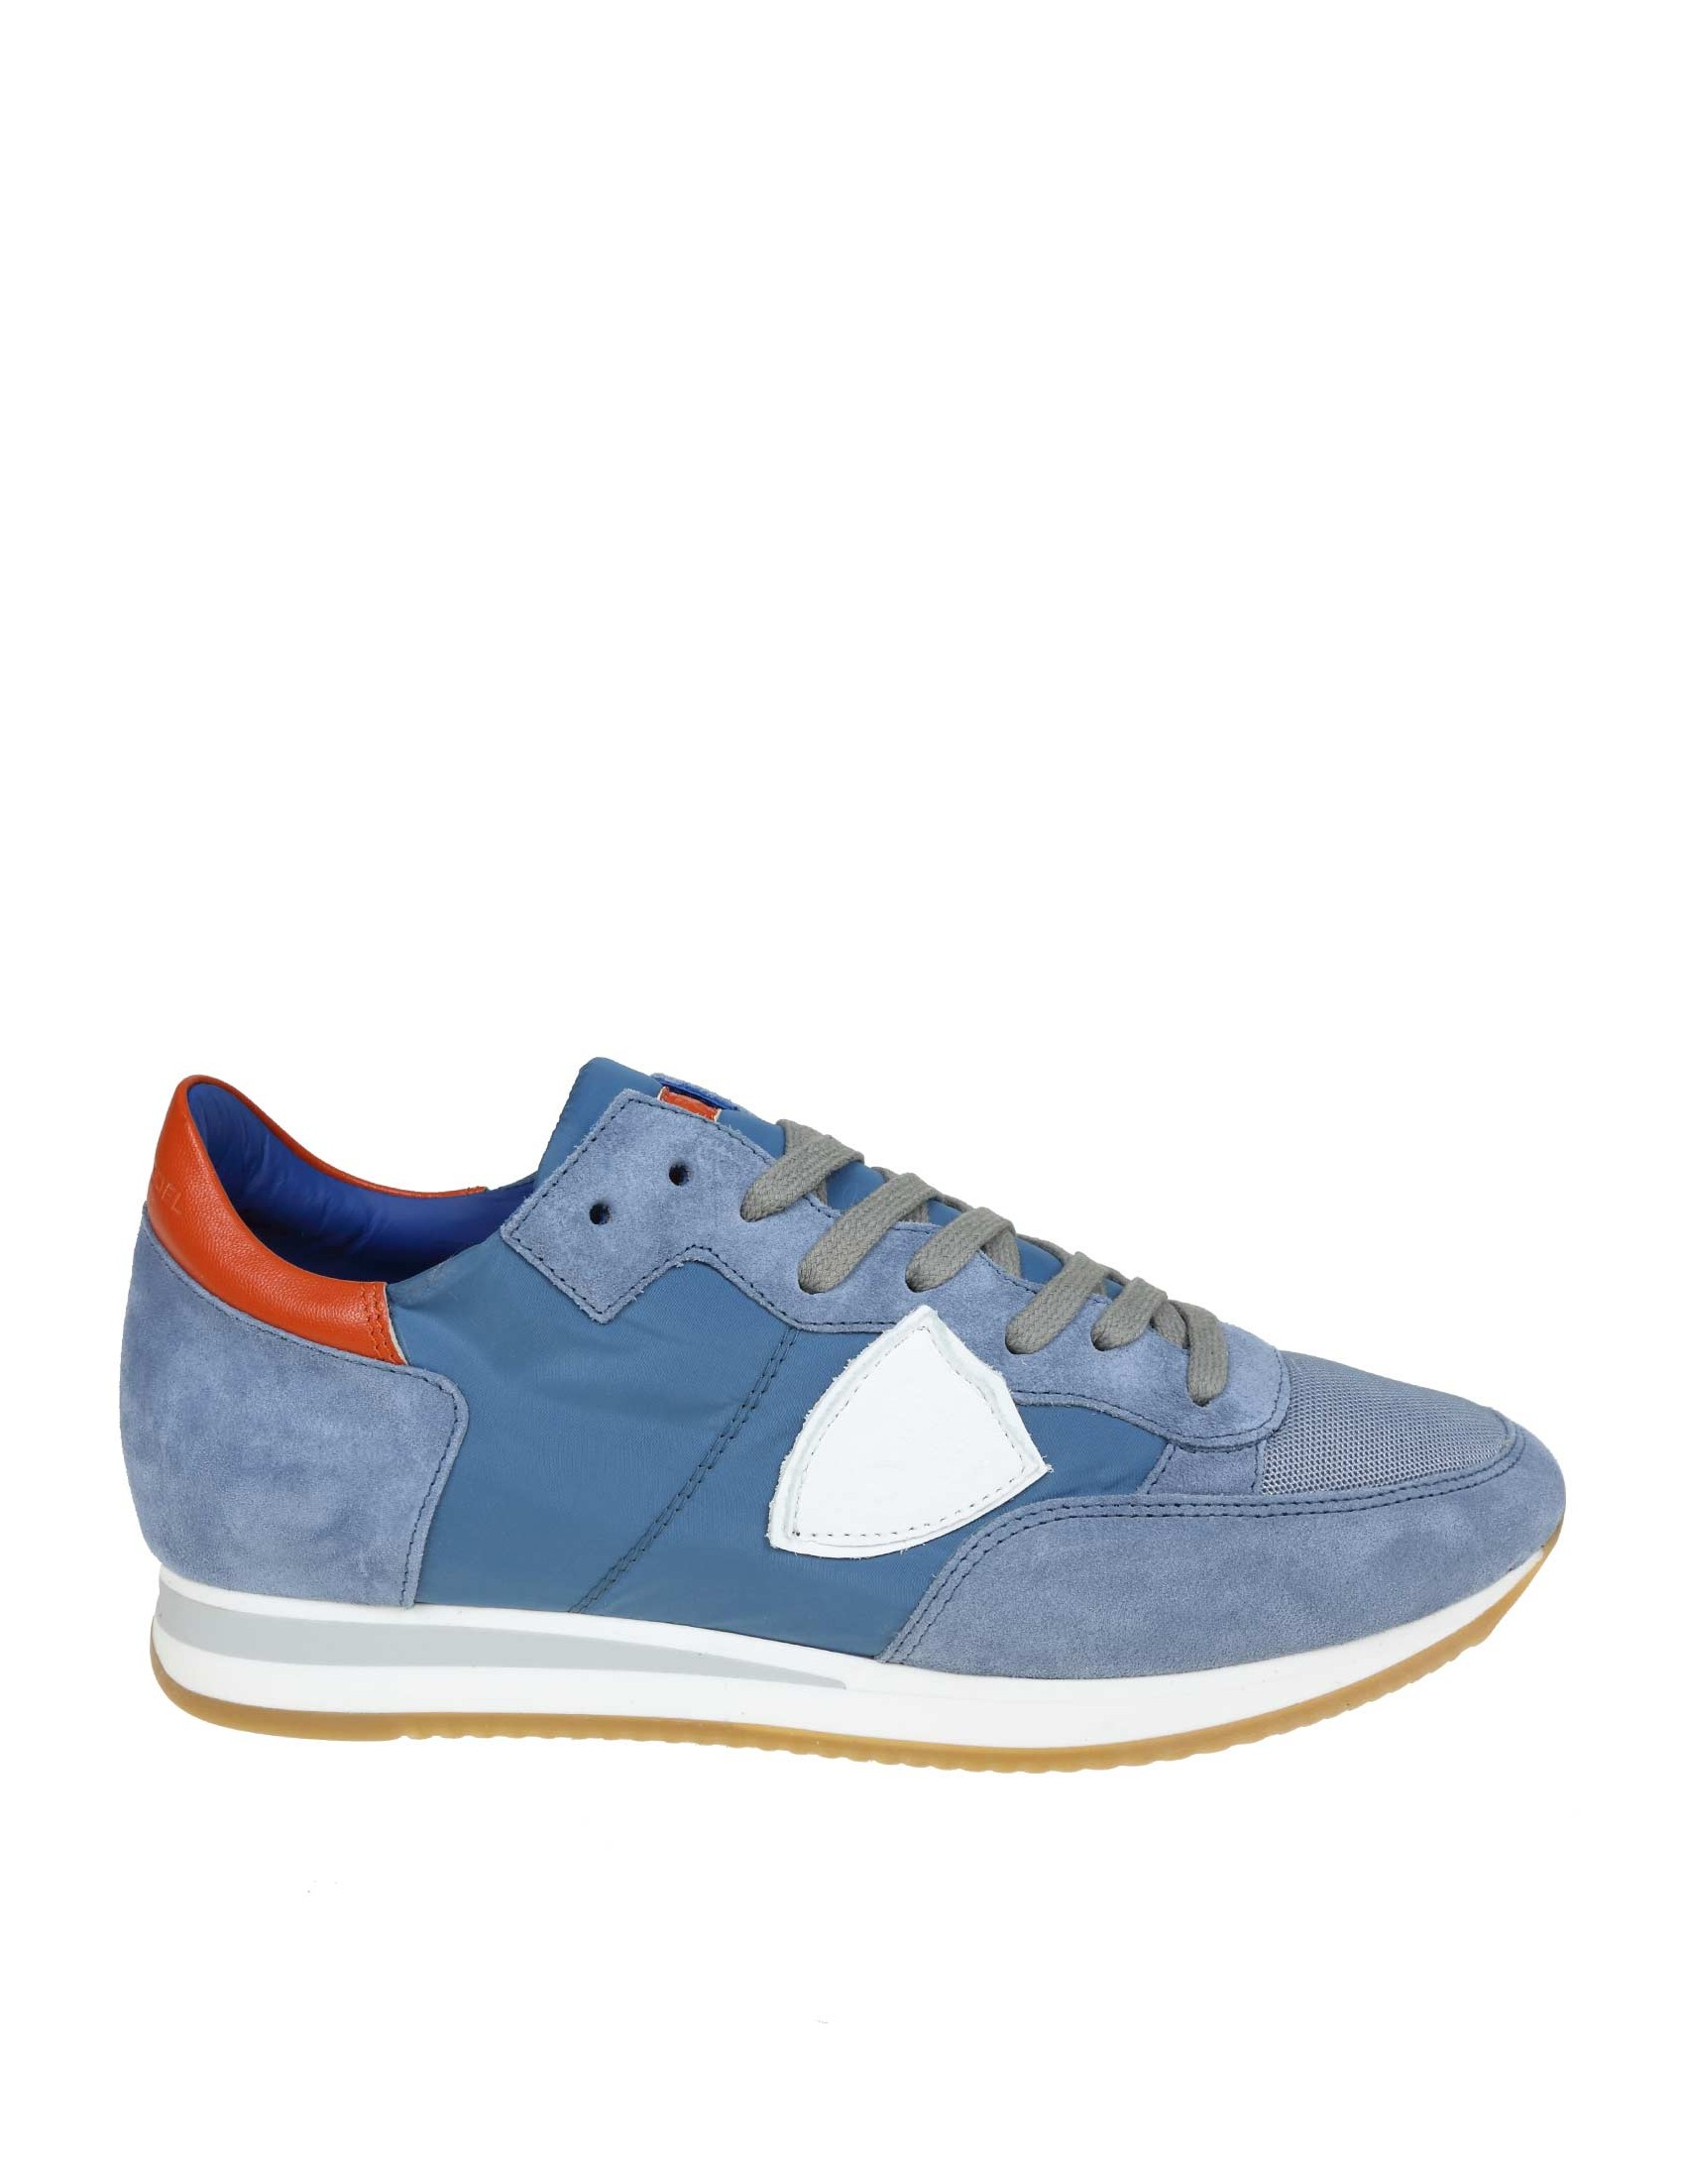 Tropez sneakers with suede toe and heel. Light blue. Heel in leather in  contrasting red. Model with round tip. Upper in fabric and suede. Closure  with laces 4f0d7c9543d